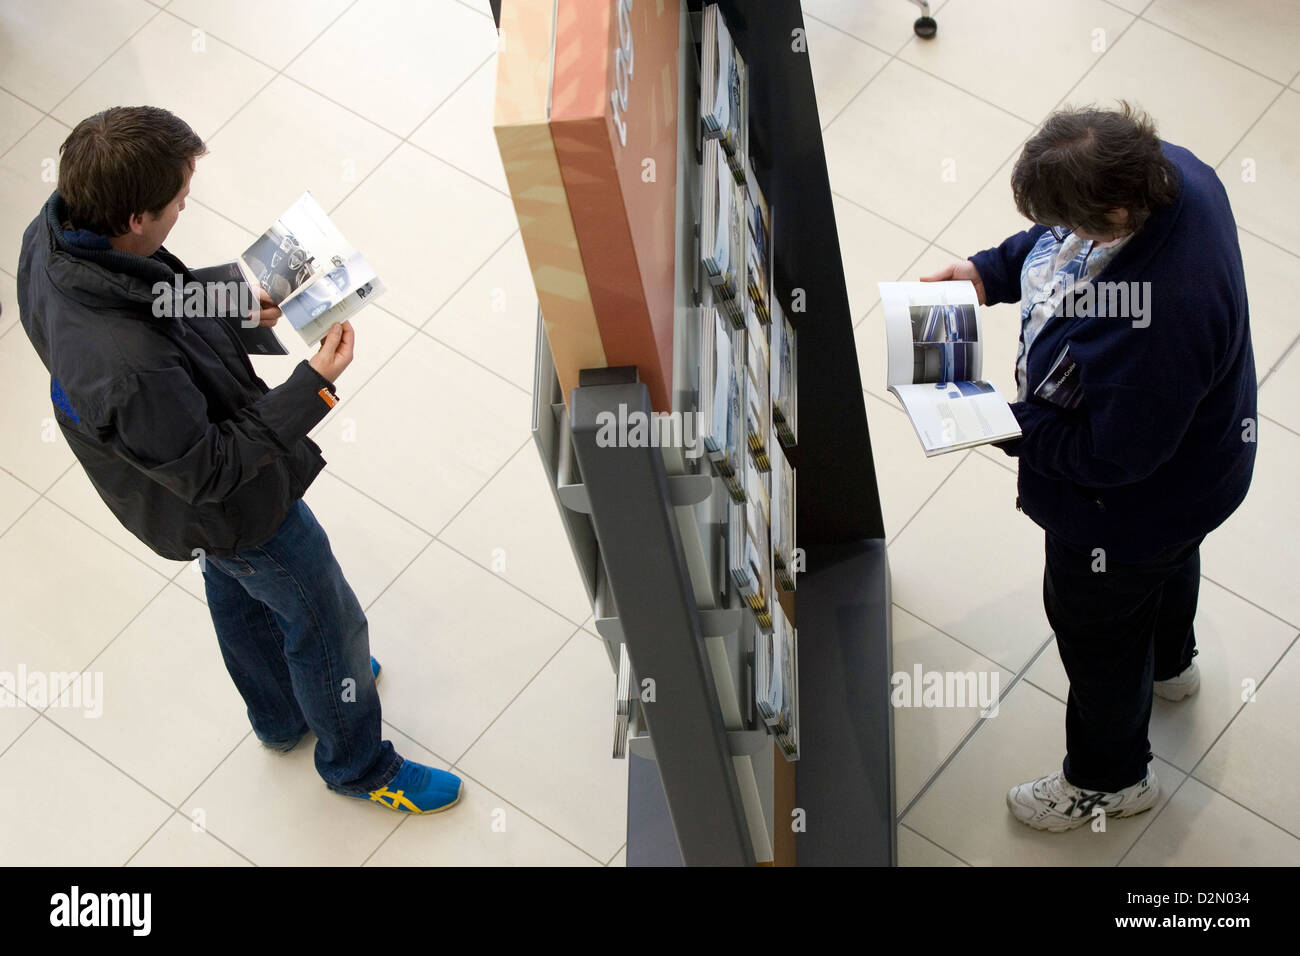 People reading brochures in a car dealership showroom. - Stock Image